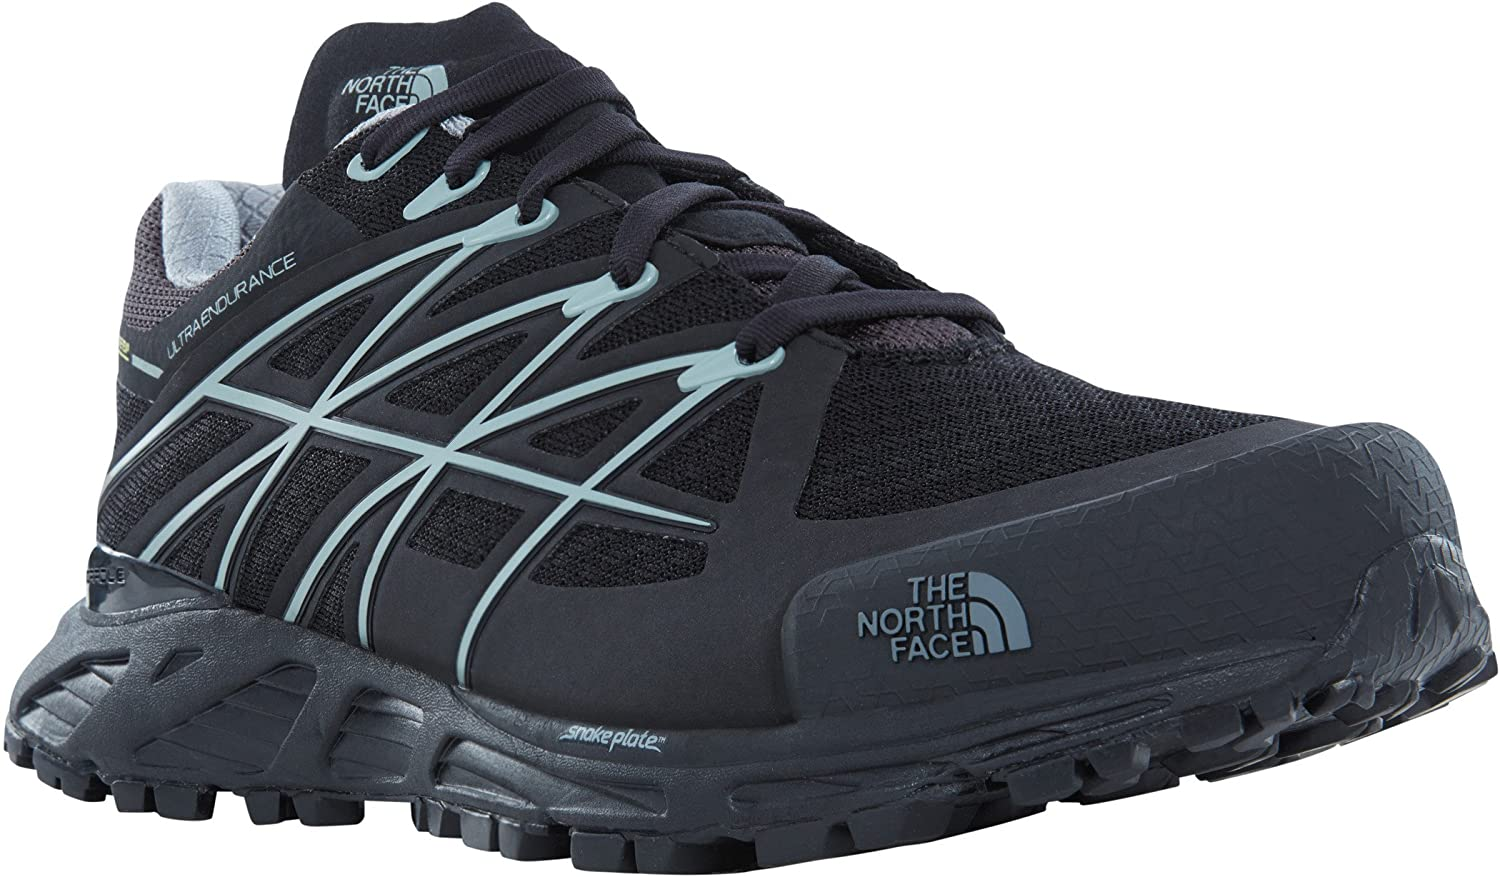 THE NORTH FACE Damen W Ultra Endurnce GTX Trekking- Trekking- Trekking- & Wanderhalbschuhe  48d988